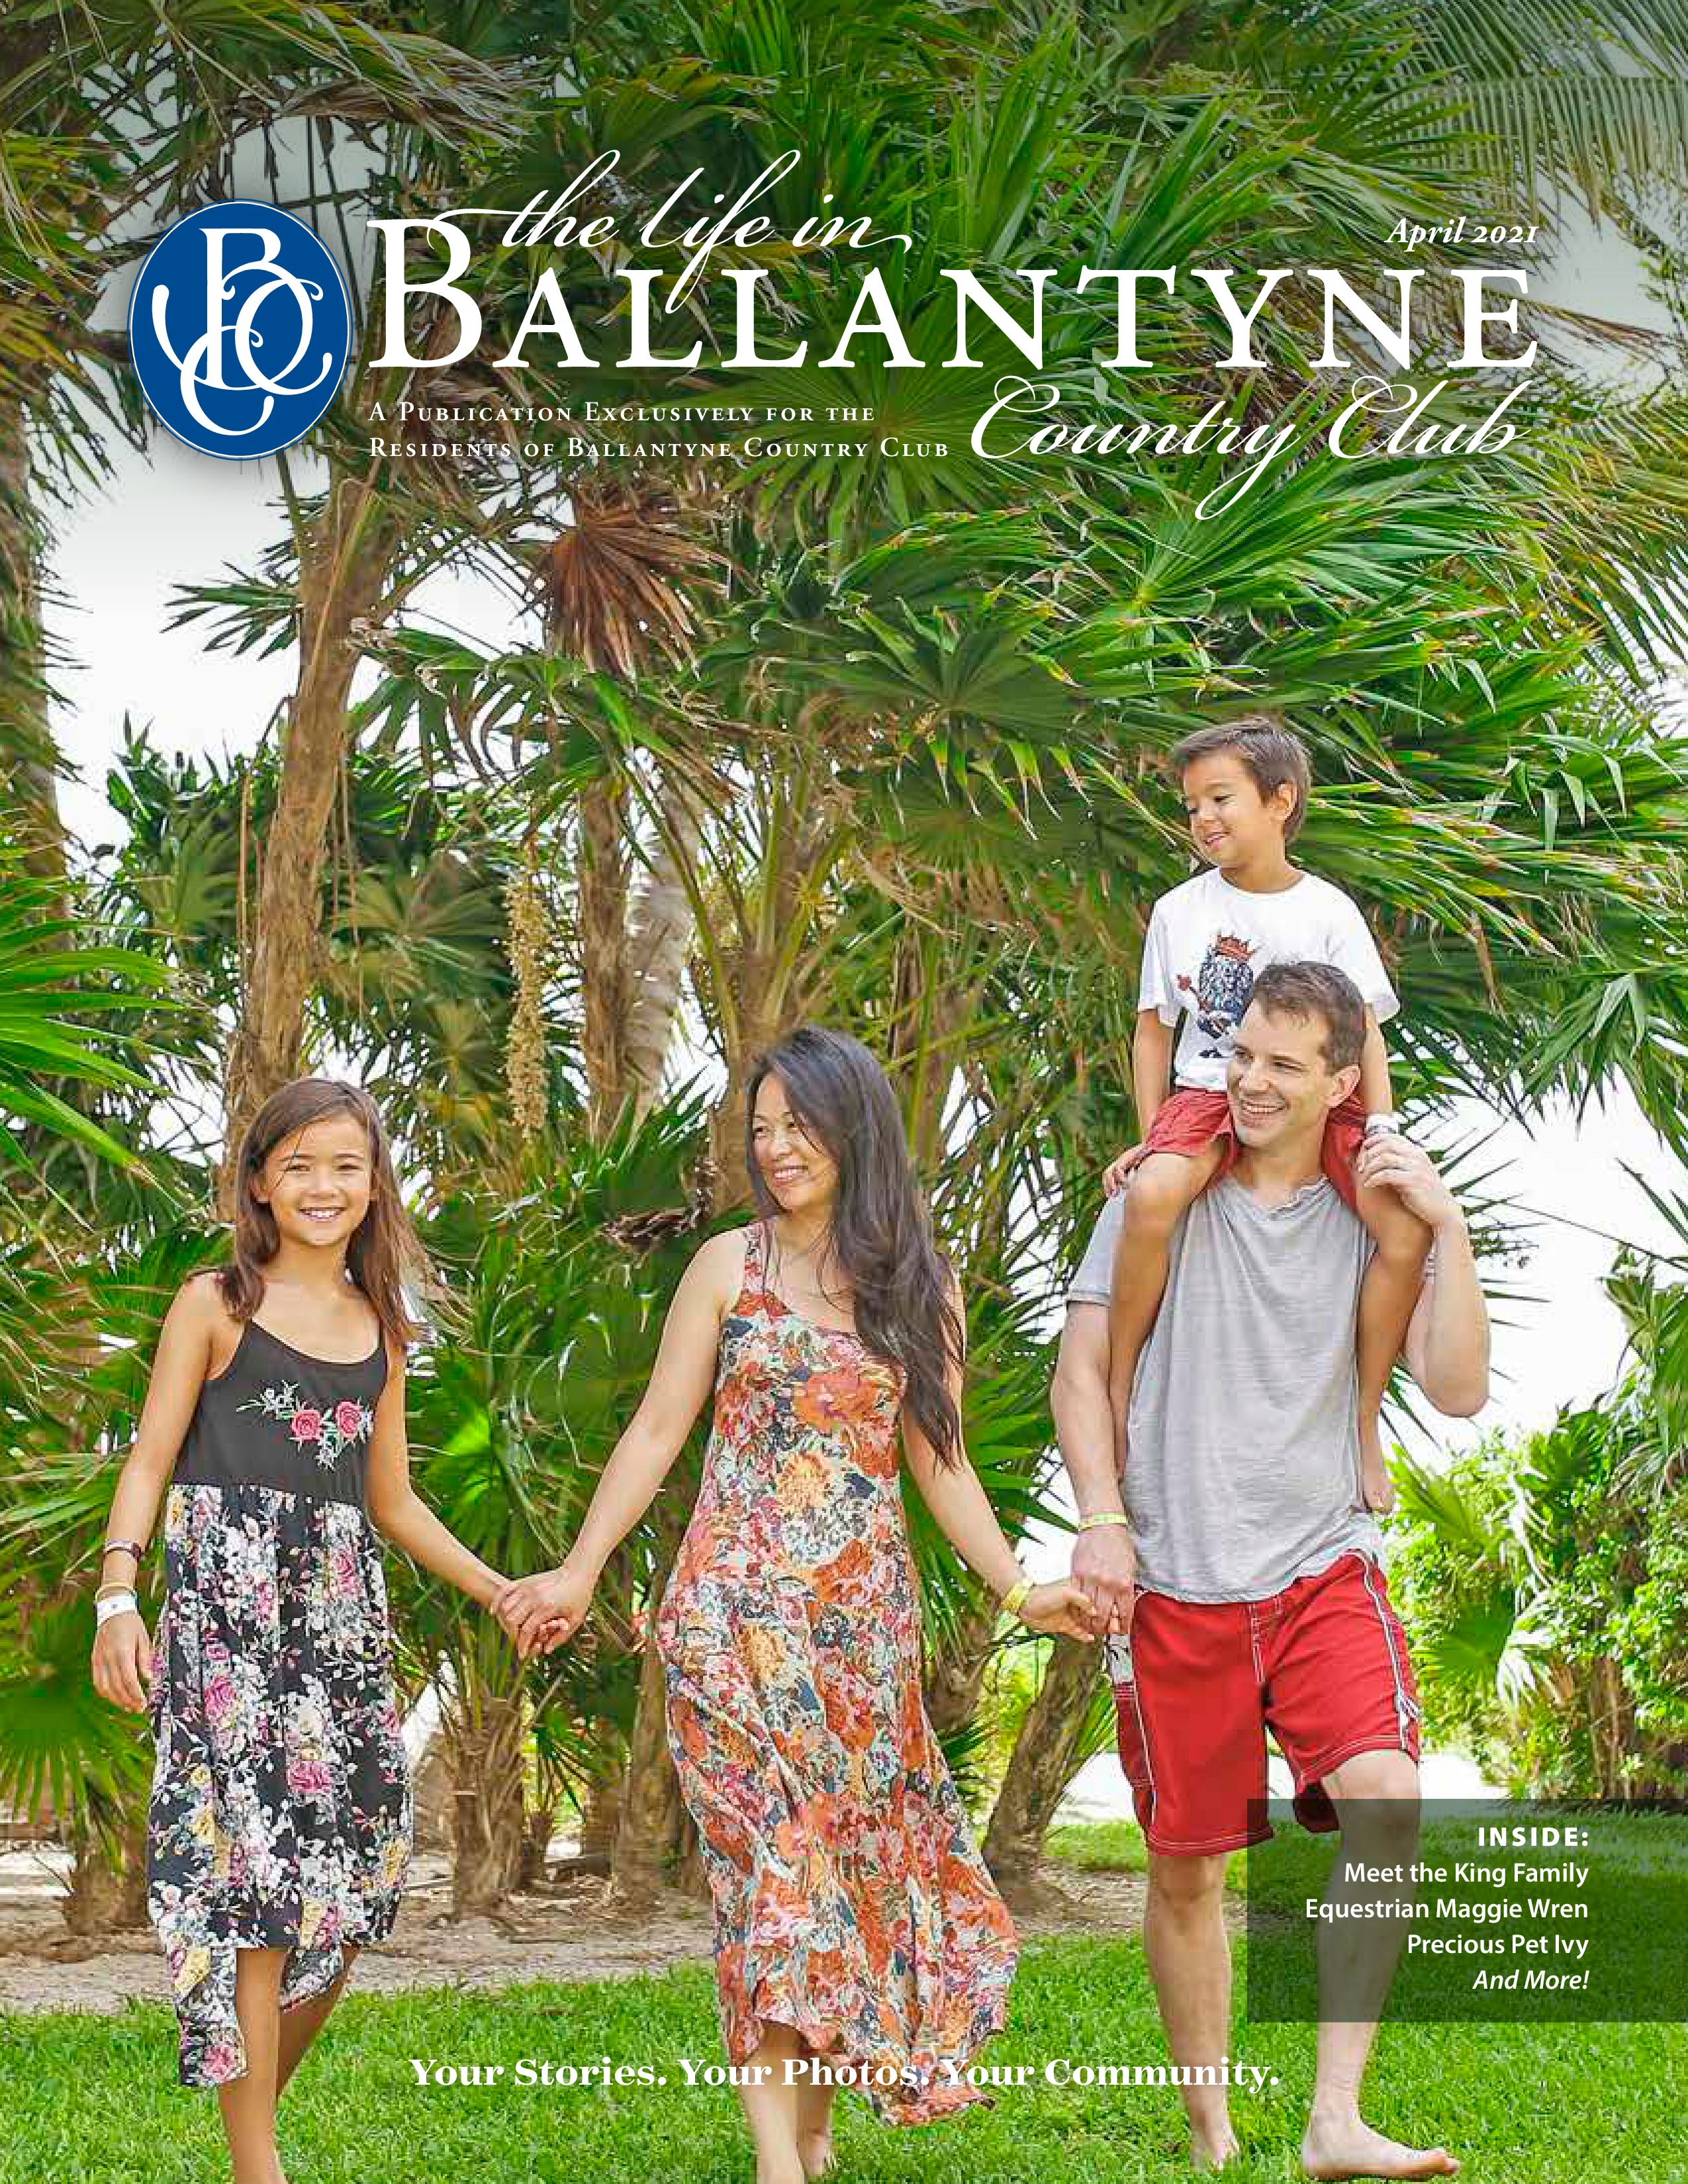 The Life in Ballantyne Country Club 2021-04-01